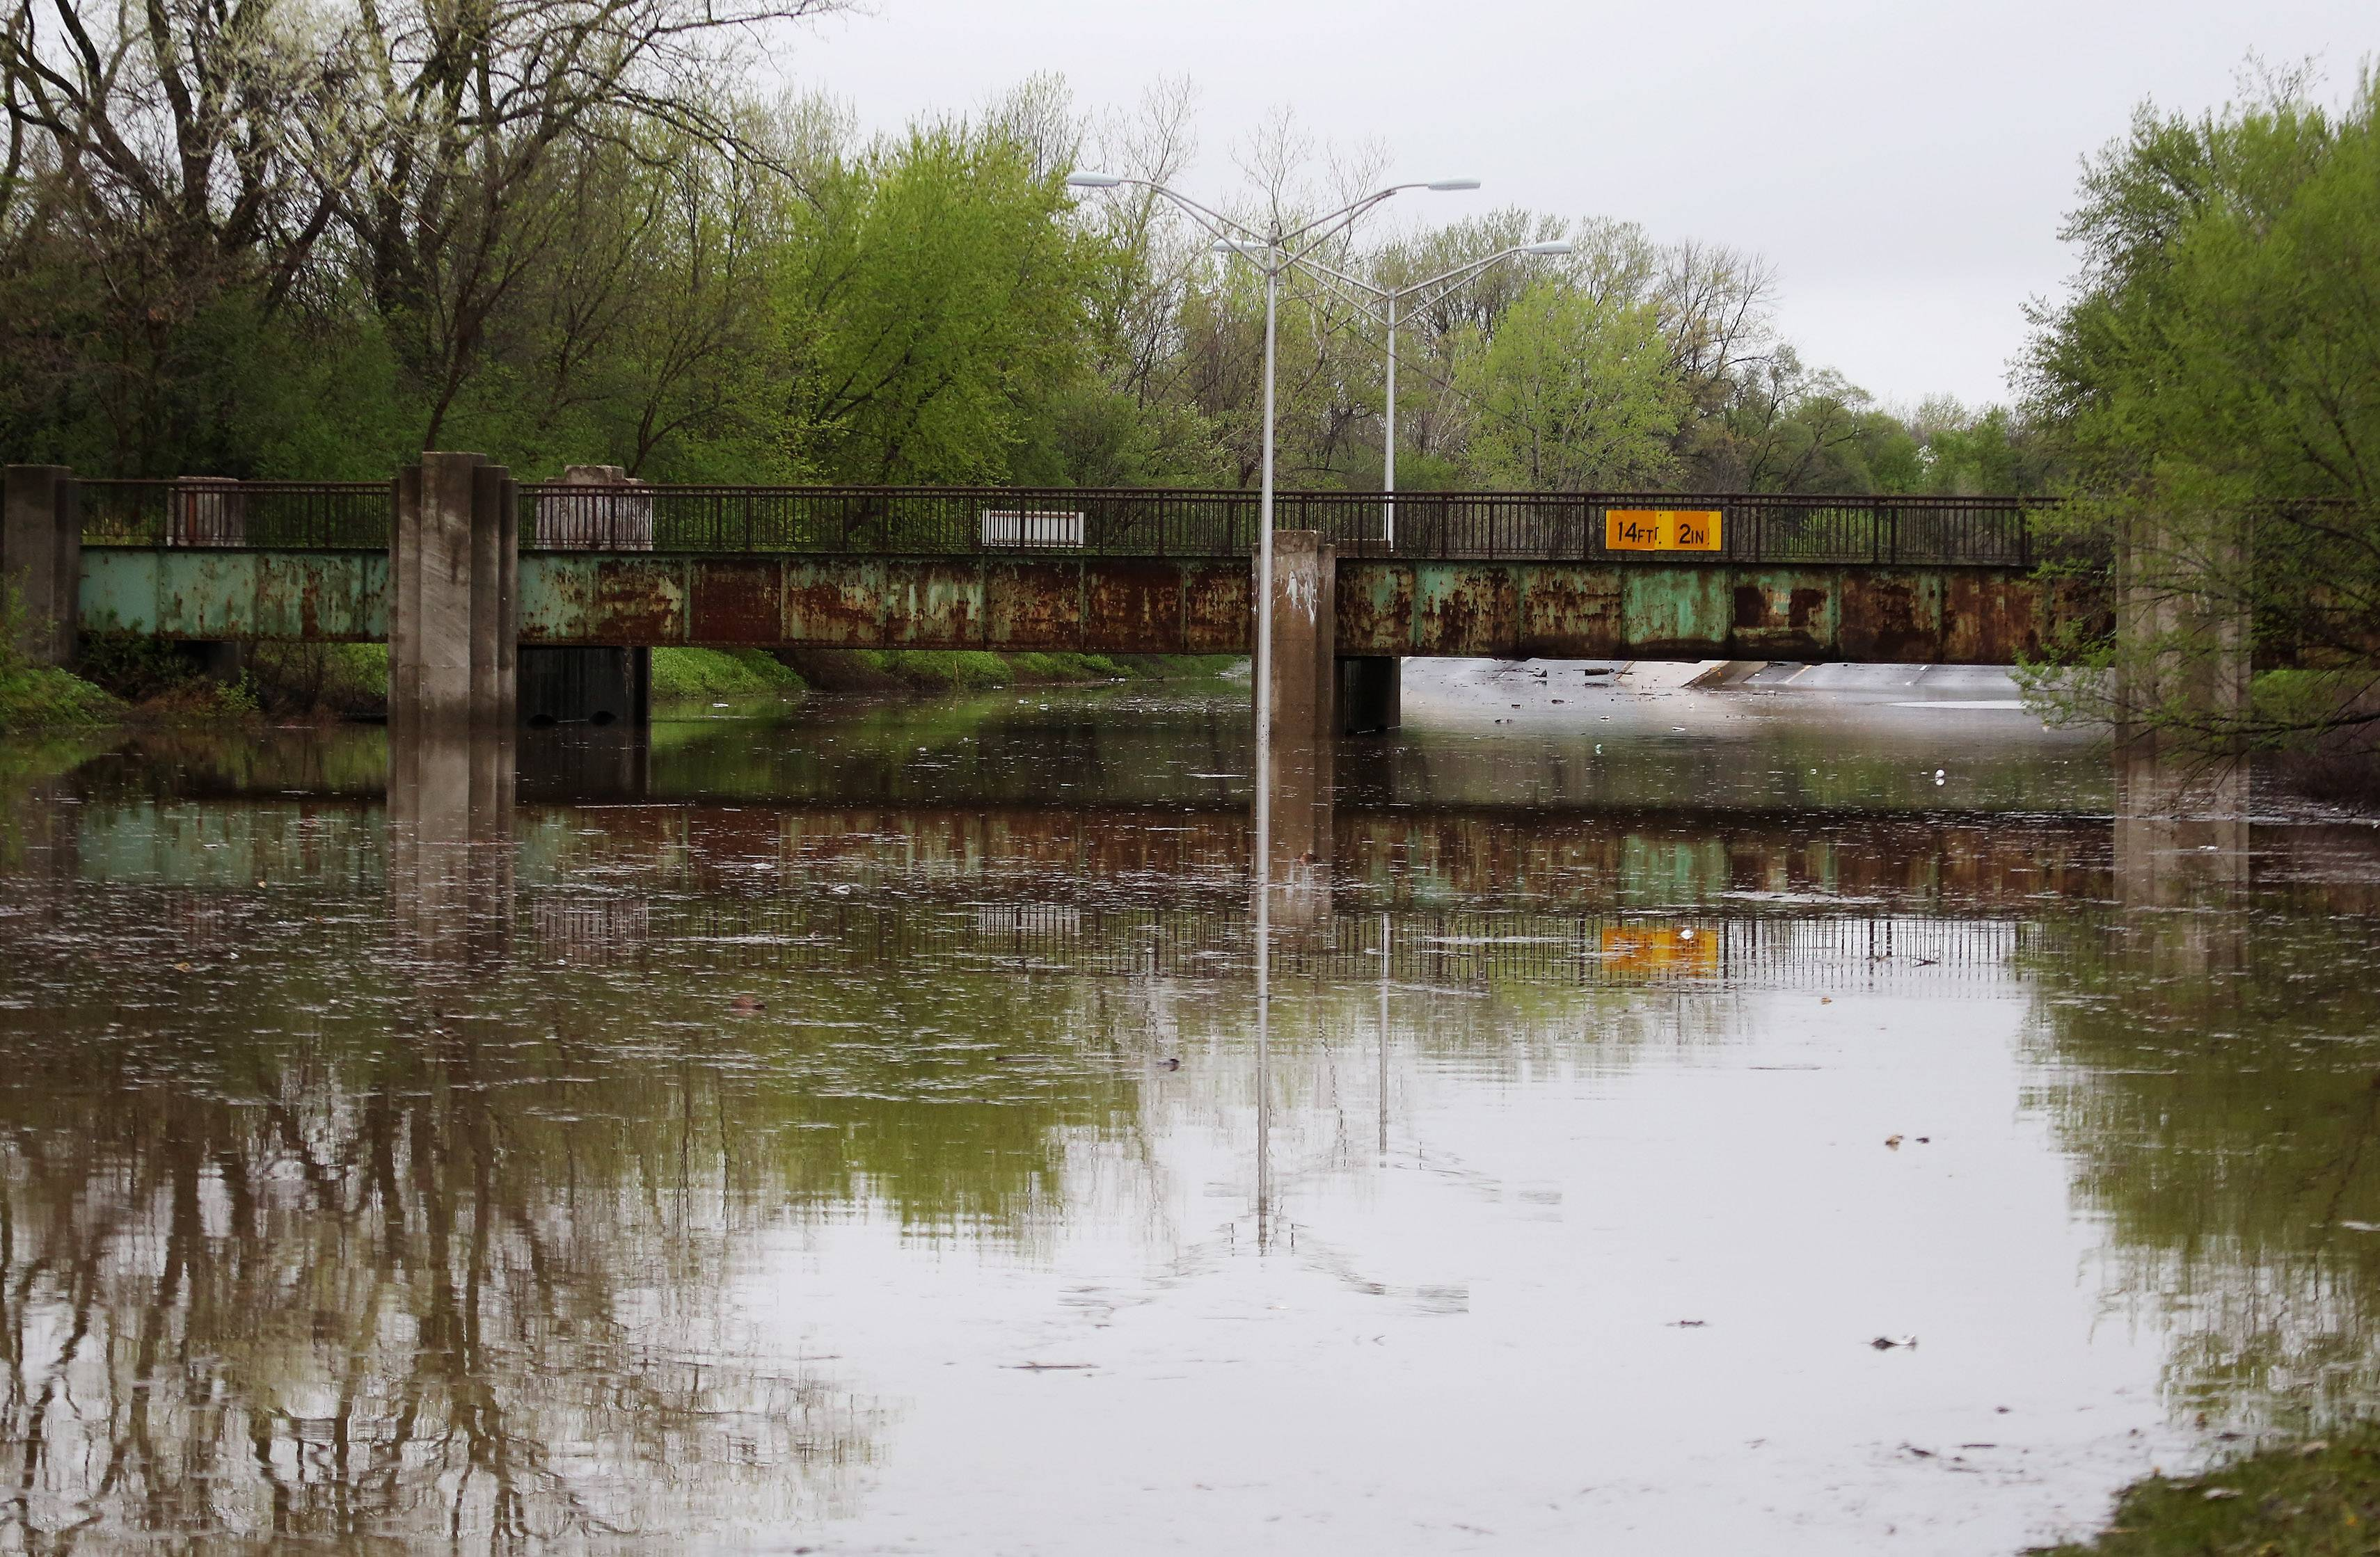 The train underpass on Route 41 north of Route 176 in Lake Bluff was flooded Tuesday. Weather forecasters have indicated that this latest rain should not result in any major flooding throughout Lake and northern Cook counties.